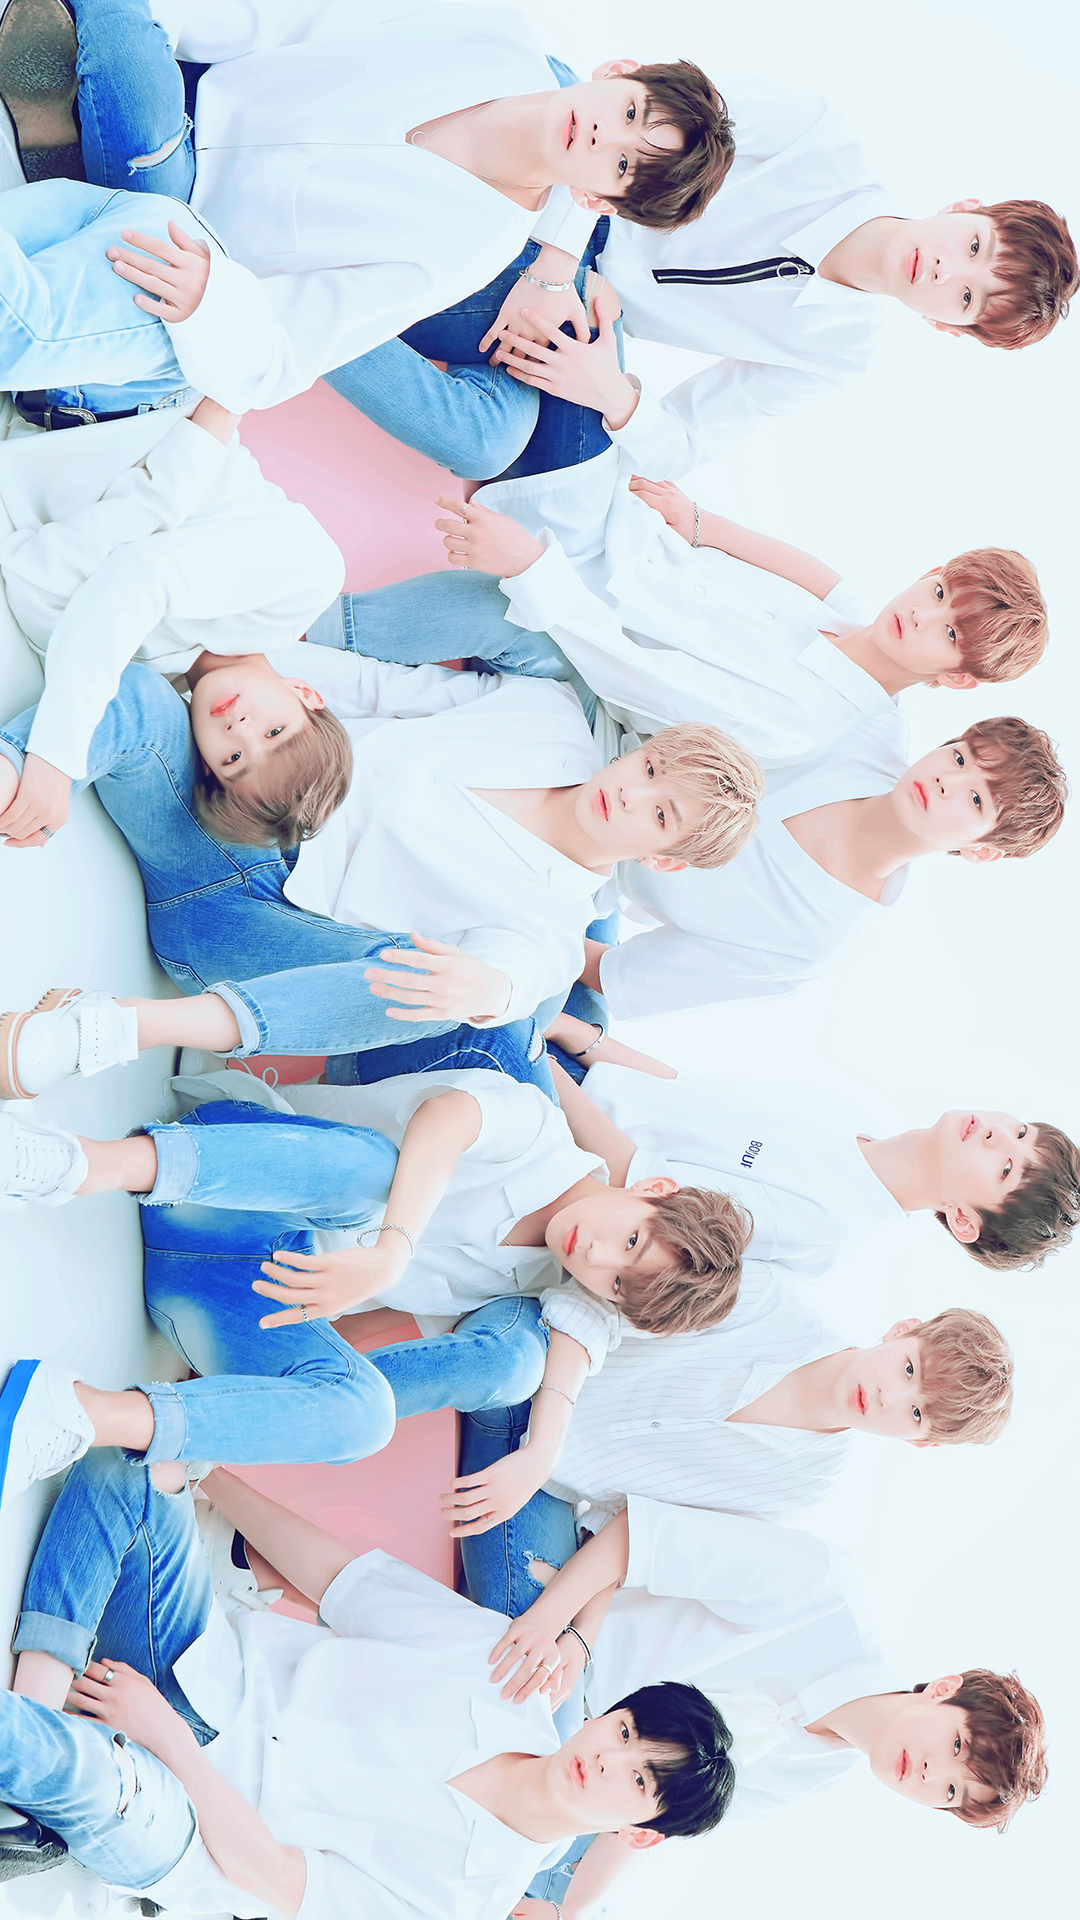 Wanna One Gambar Wanna One Profil Group Hd Wallpaper And Background